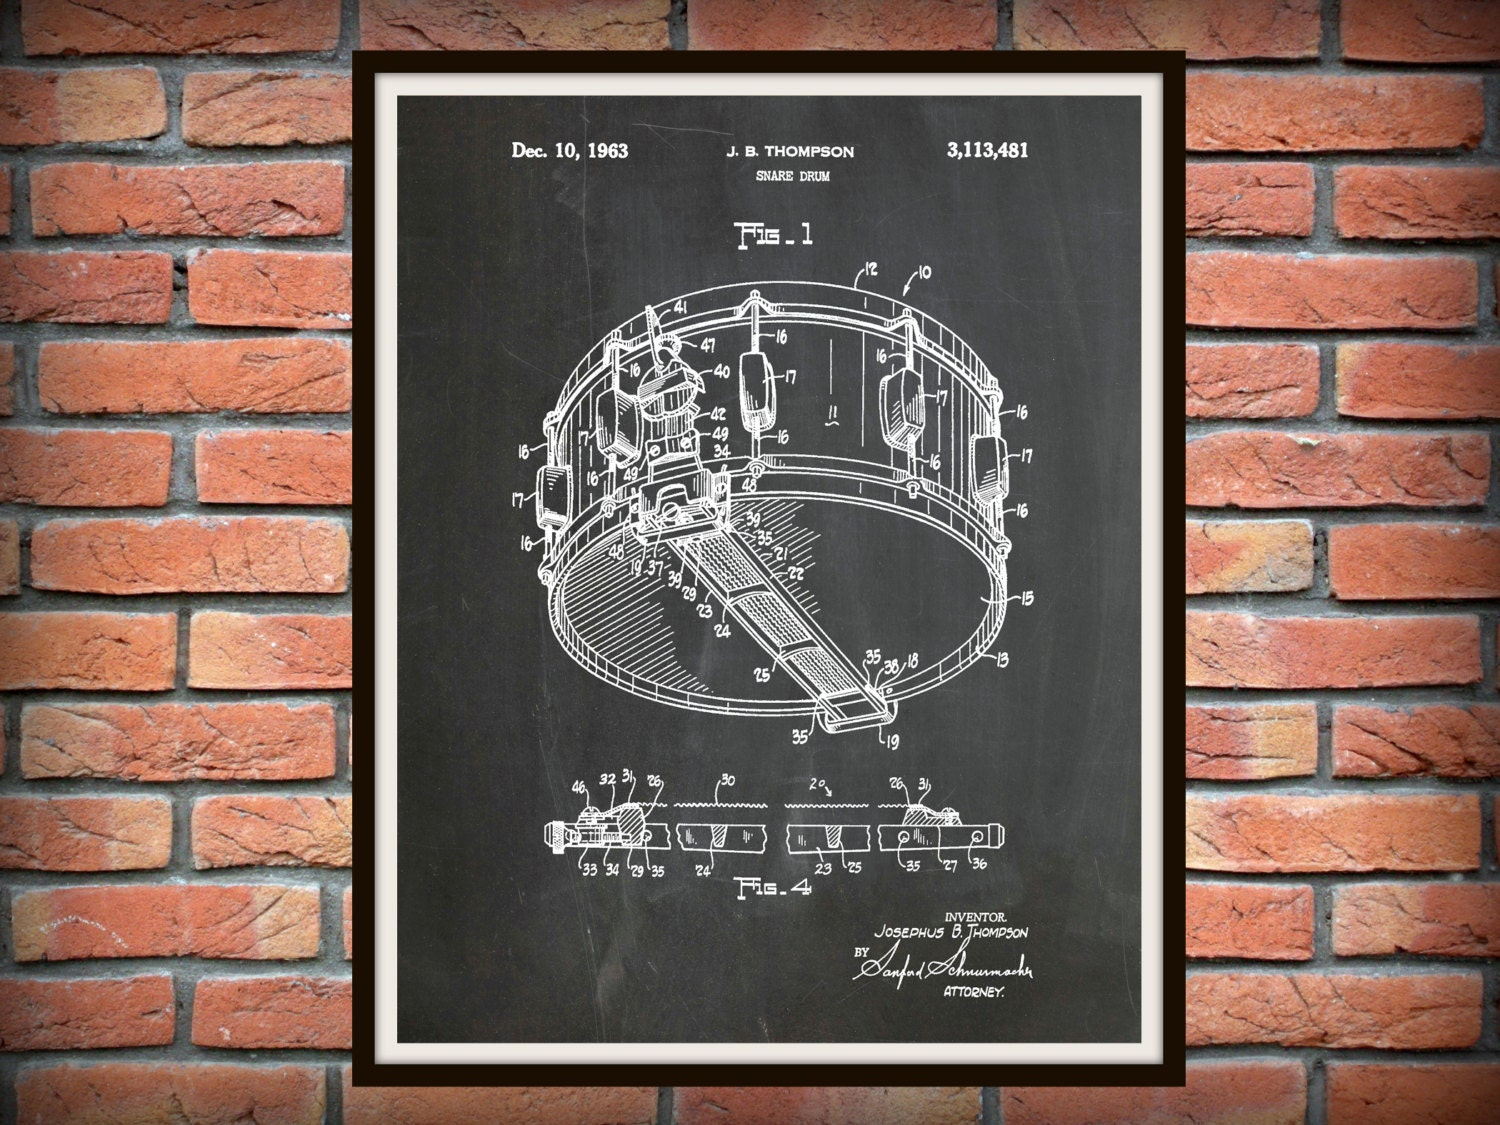 1963 Snare Drum Patent Print - Marching Band Decor - Music Room Decor - Jazz Band Wall Art - Marching Band Gift & 1963 Snare Drum Patent Print - Marching Band Decor - Music Room ...